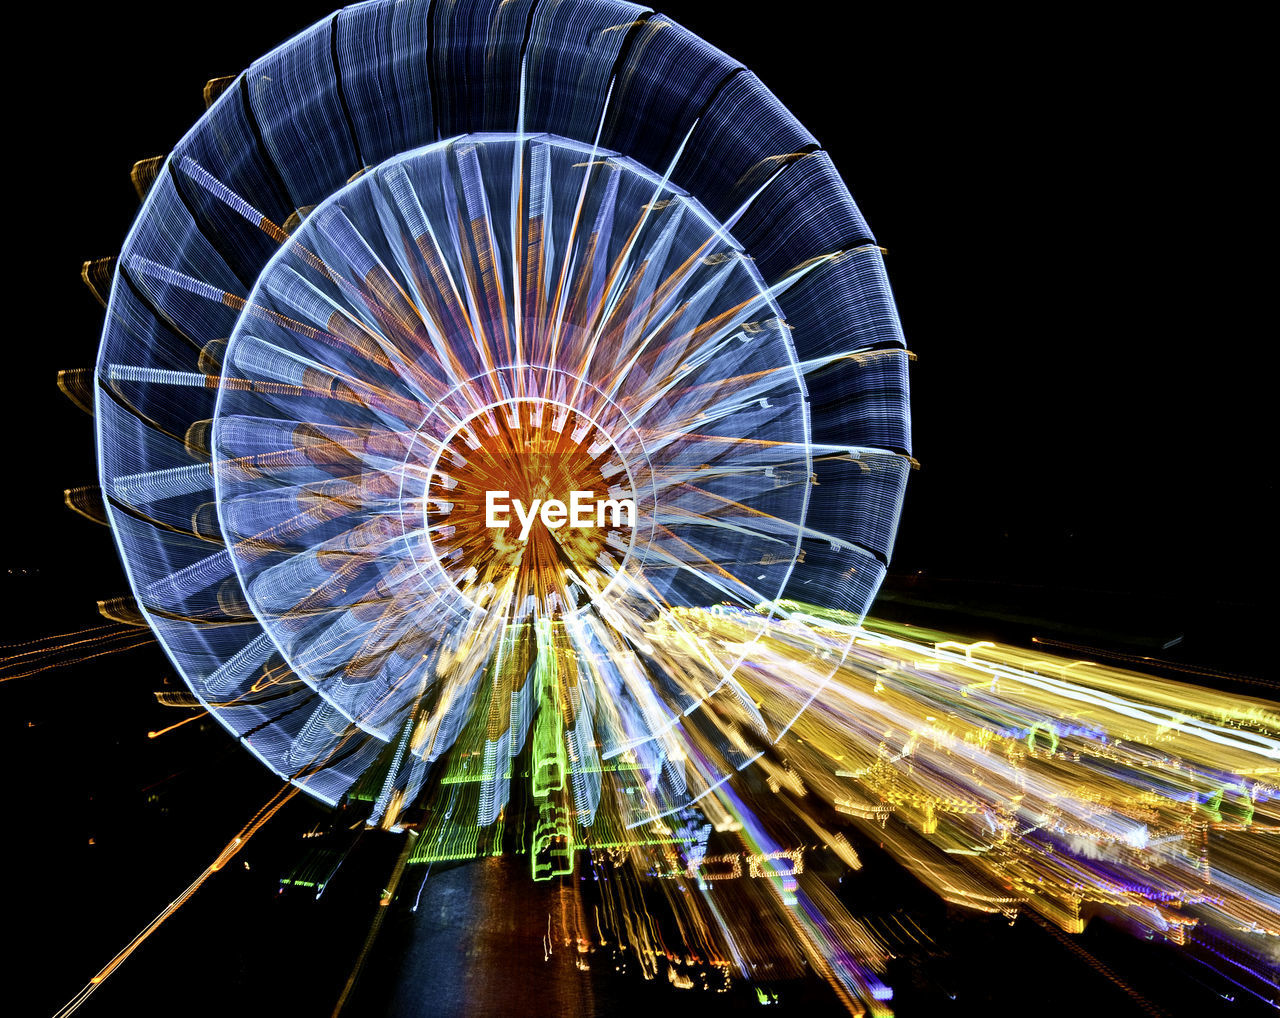 illuminated, night, amusement park, ferris wheel, amusement park ride, arts culture and entertainment, sky, motion, low angle view, no people, long exposure, pattern, blurred motion, architecture, spinning, speed, glowing, multi colored, nature, clear sky, fairground